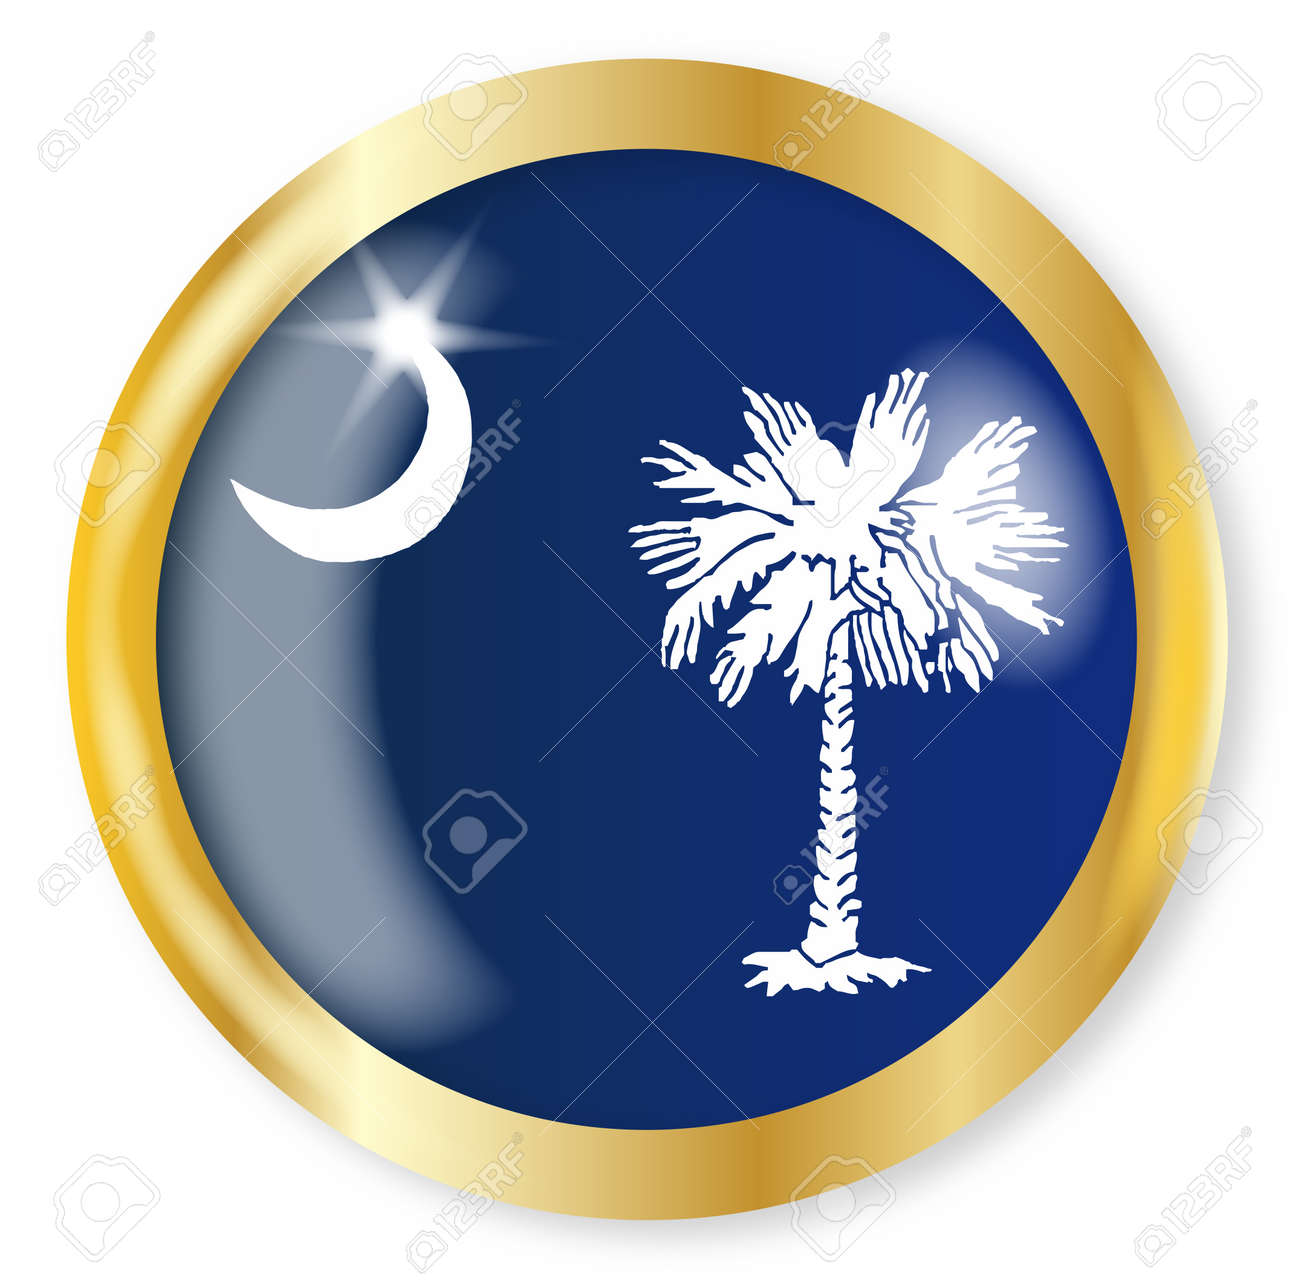 934 South Carolina State Stock Vector Illustration And Royalty ...